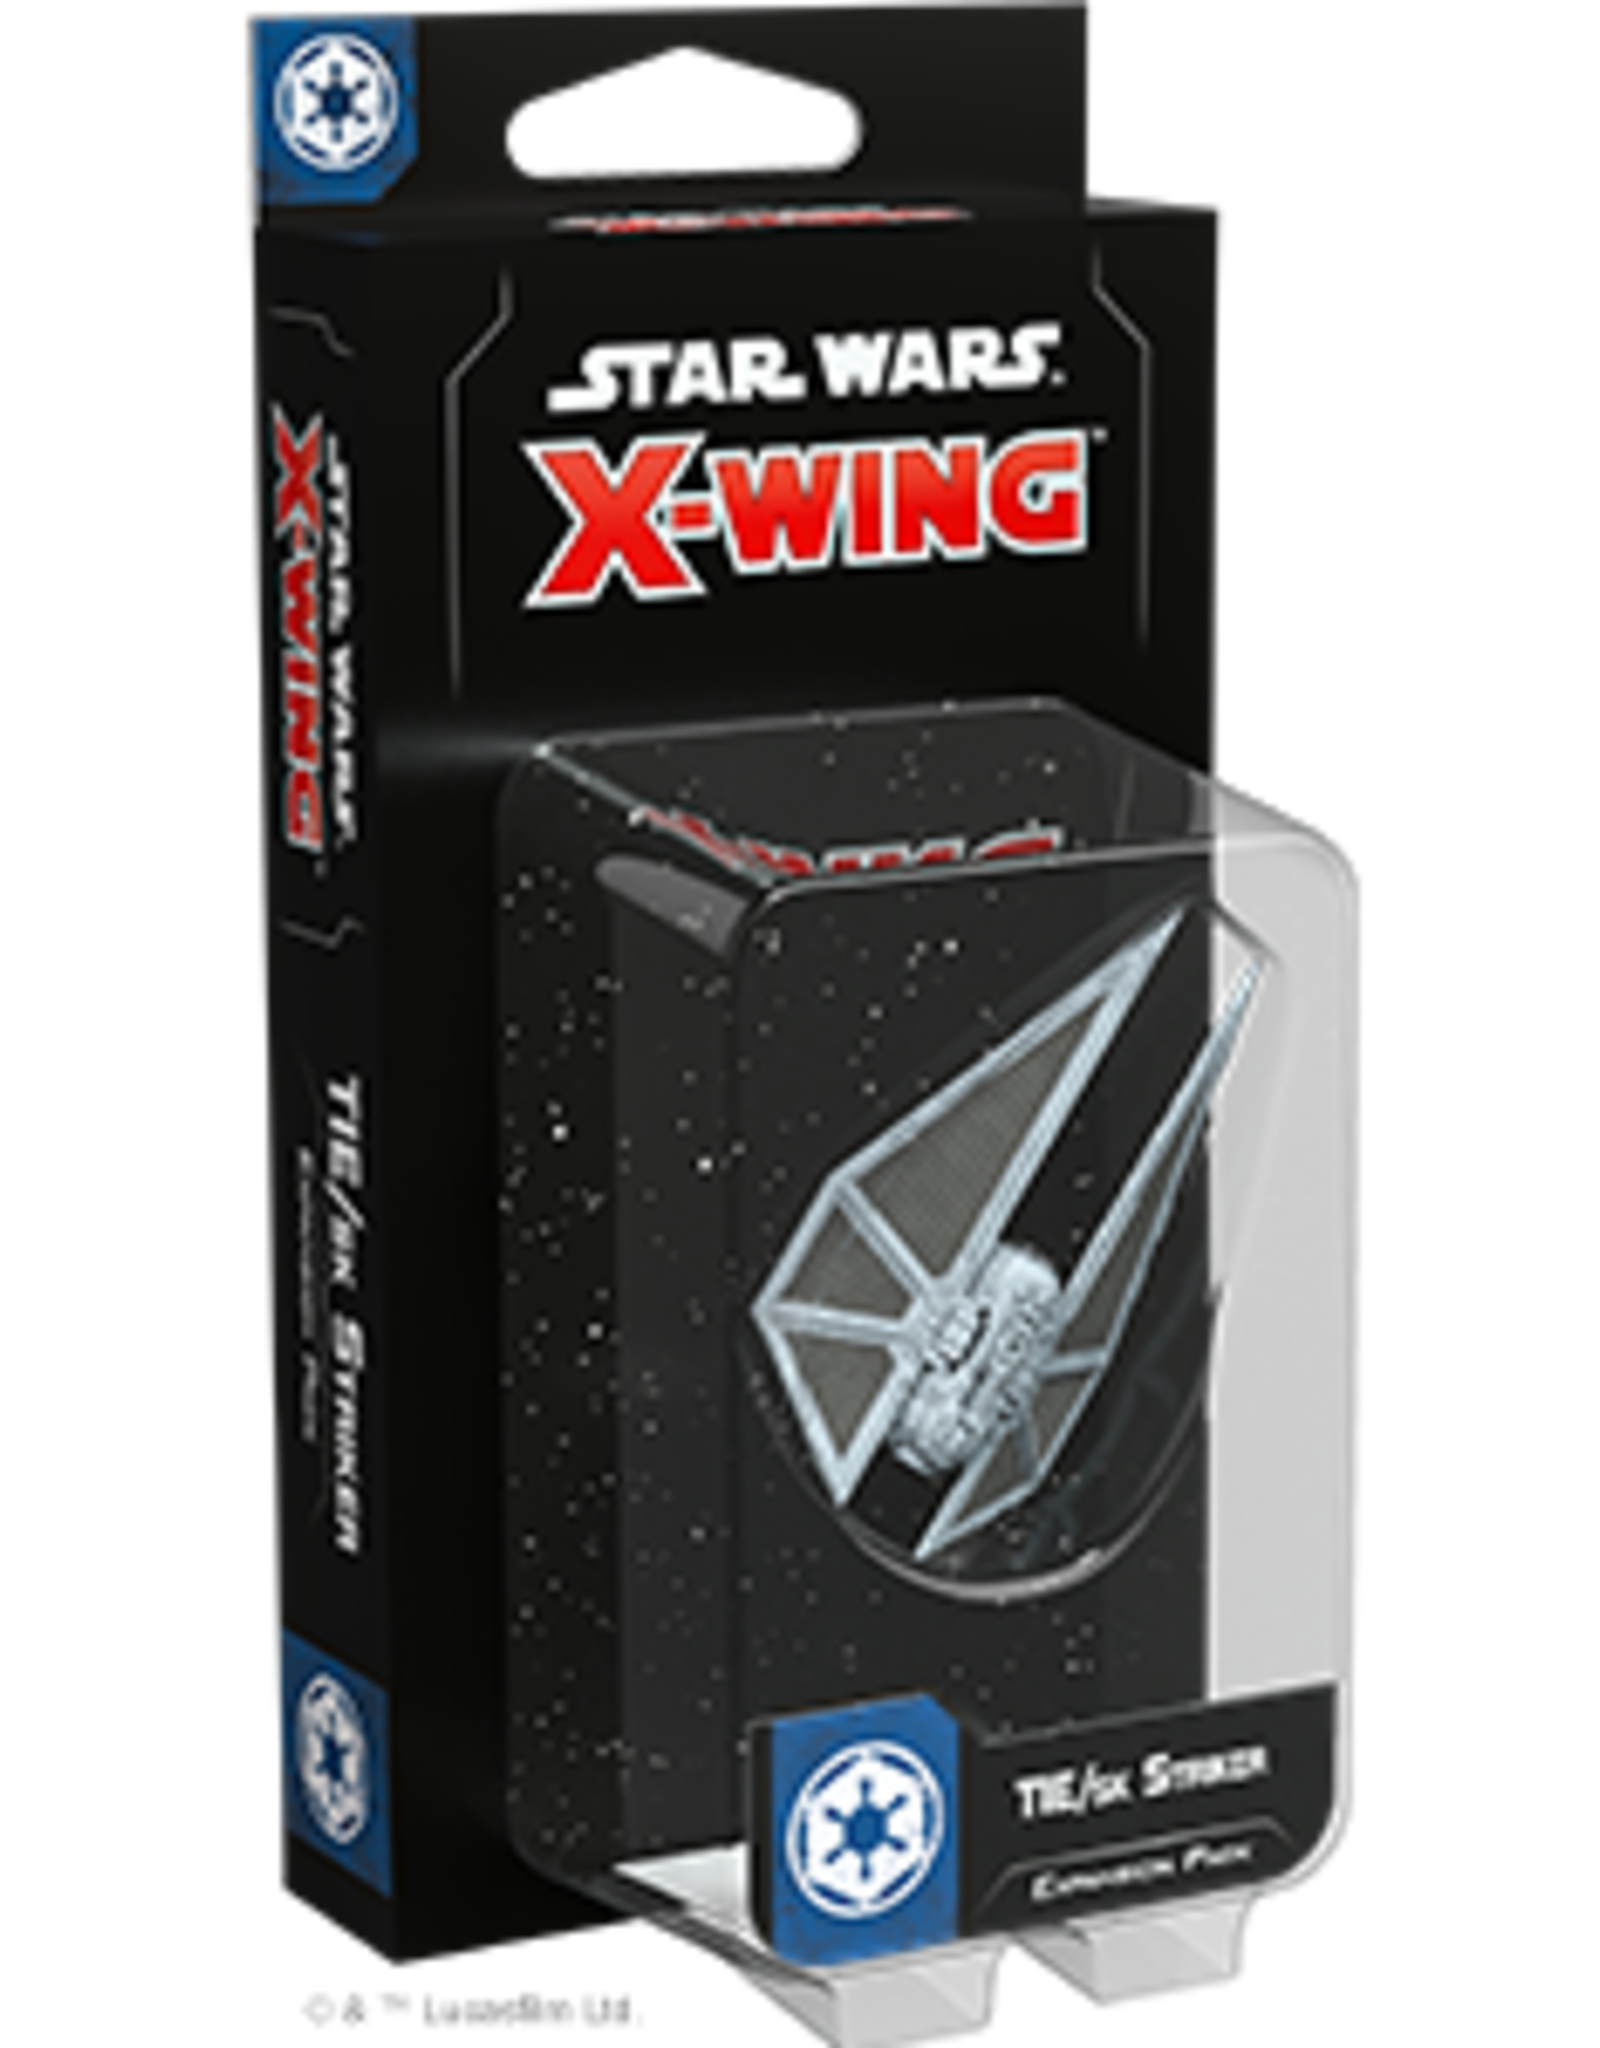 FFG Star Wars X-Wing 2.0: Tie/sk Striker Expansion Pack